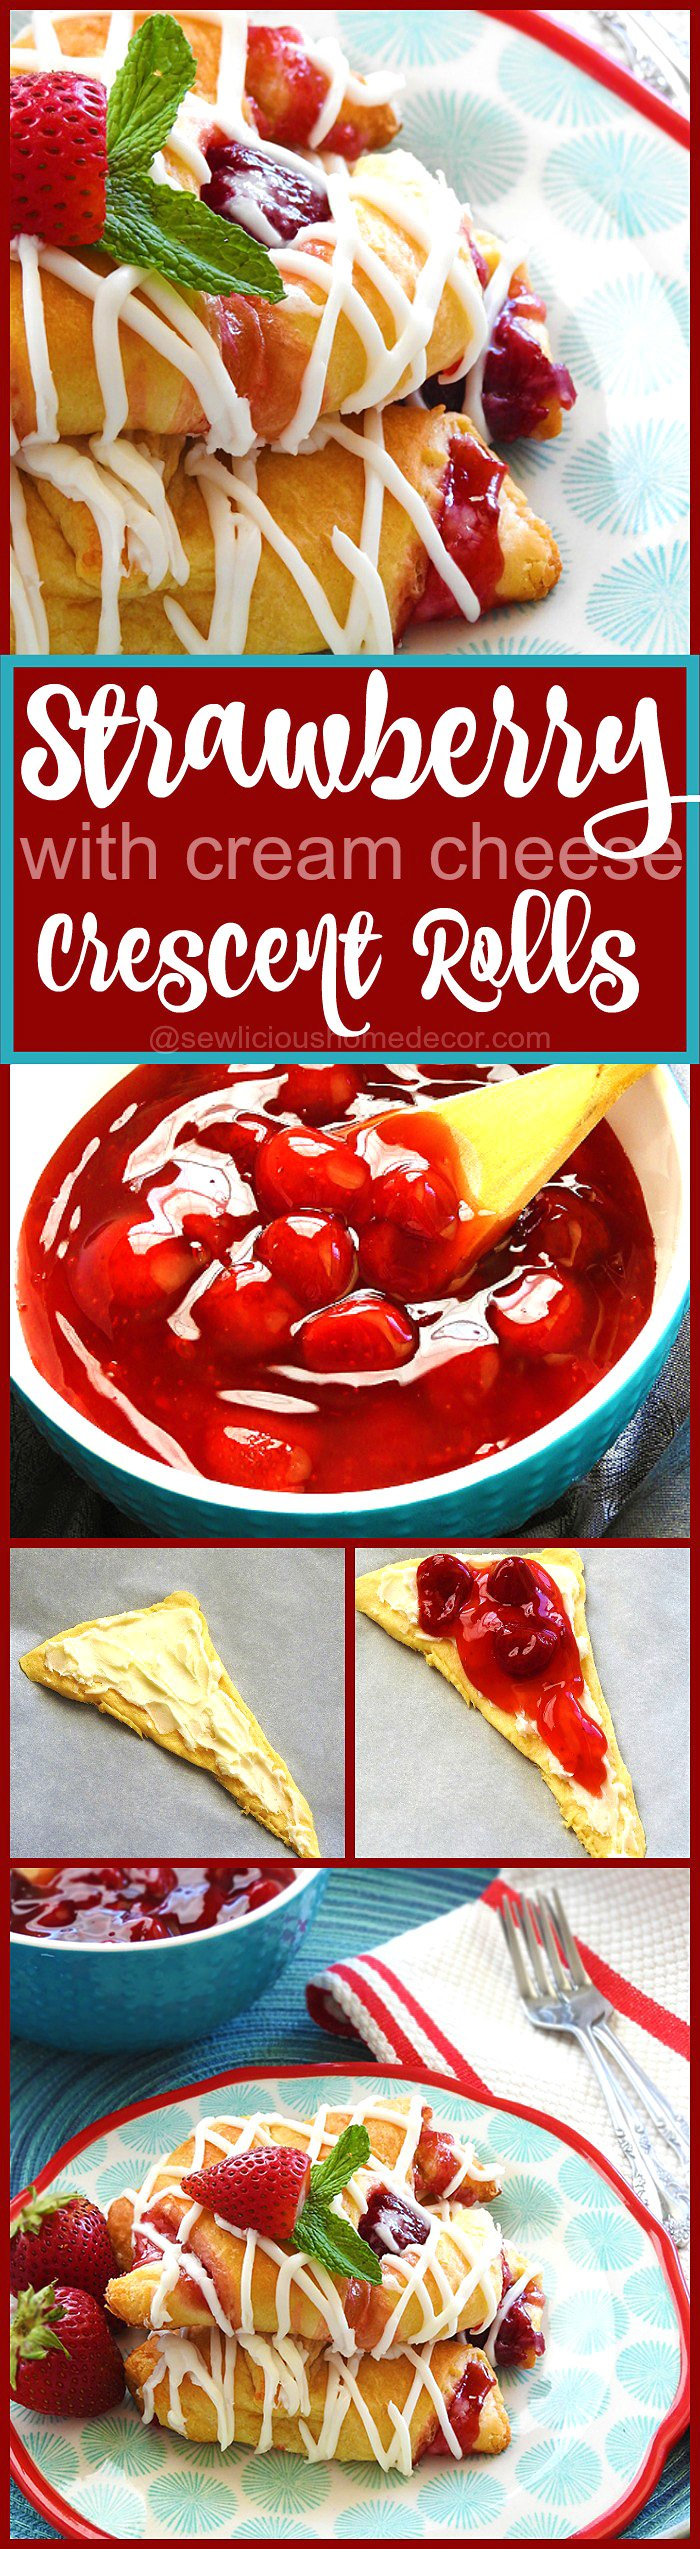 Quick and Easy Strawberry Cream Cheese Crescent Rolls at sewlicioushomedecor.com